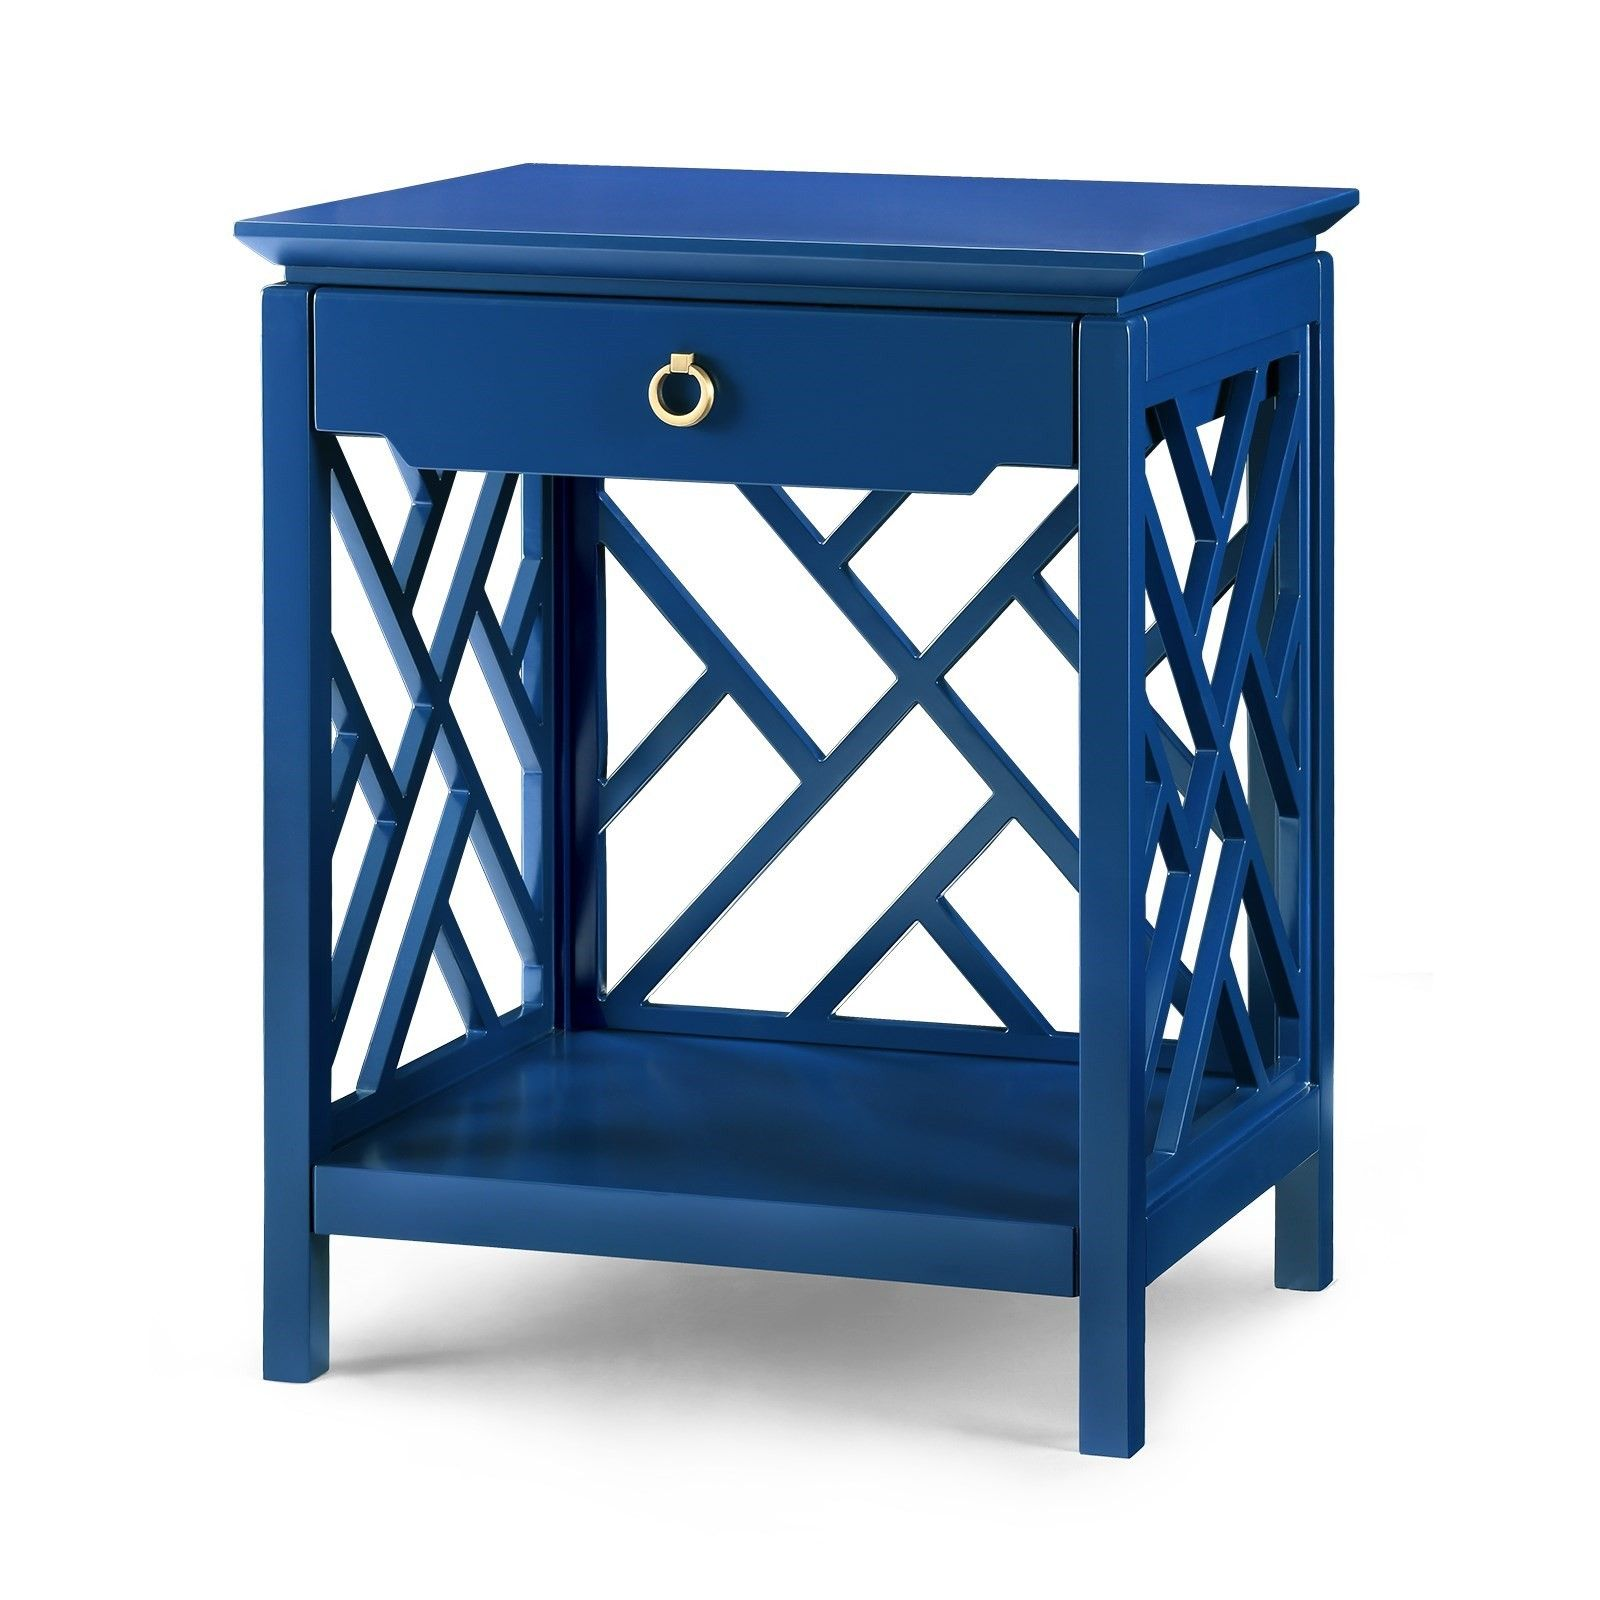 bungalow nantucket chippendale fretwork drawer side table accent blue furniture homedecor interiordesign sofa and end tables turquoise dresser small industrial cupboards for